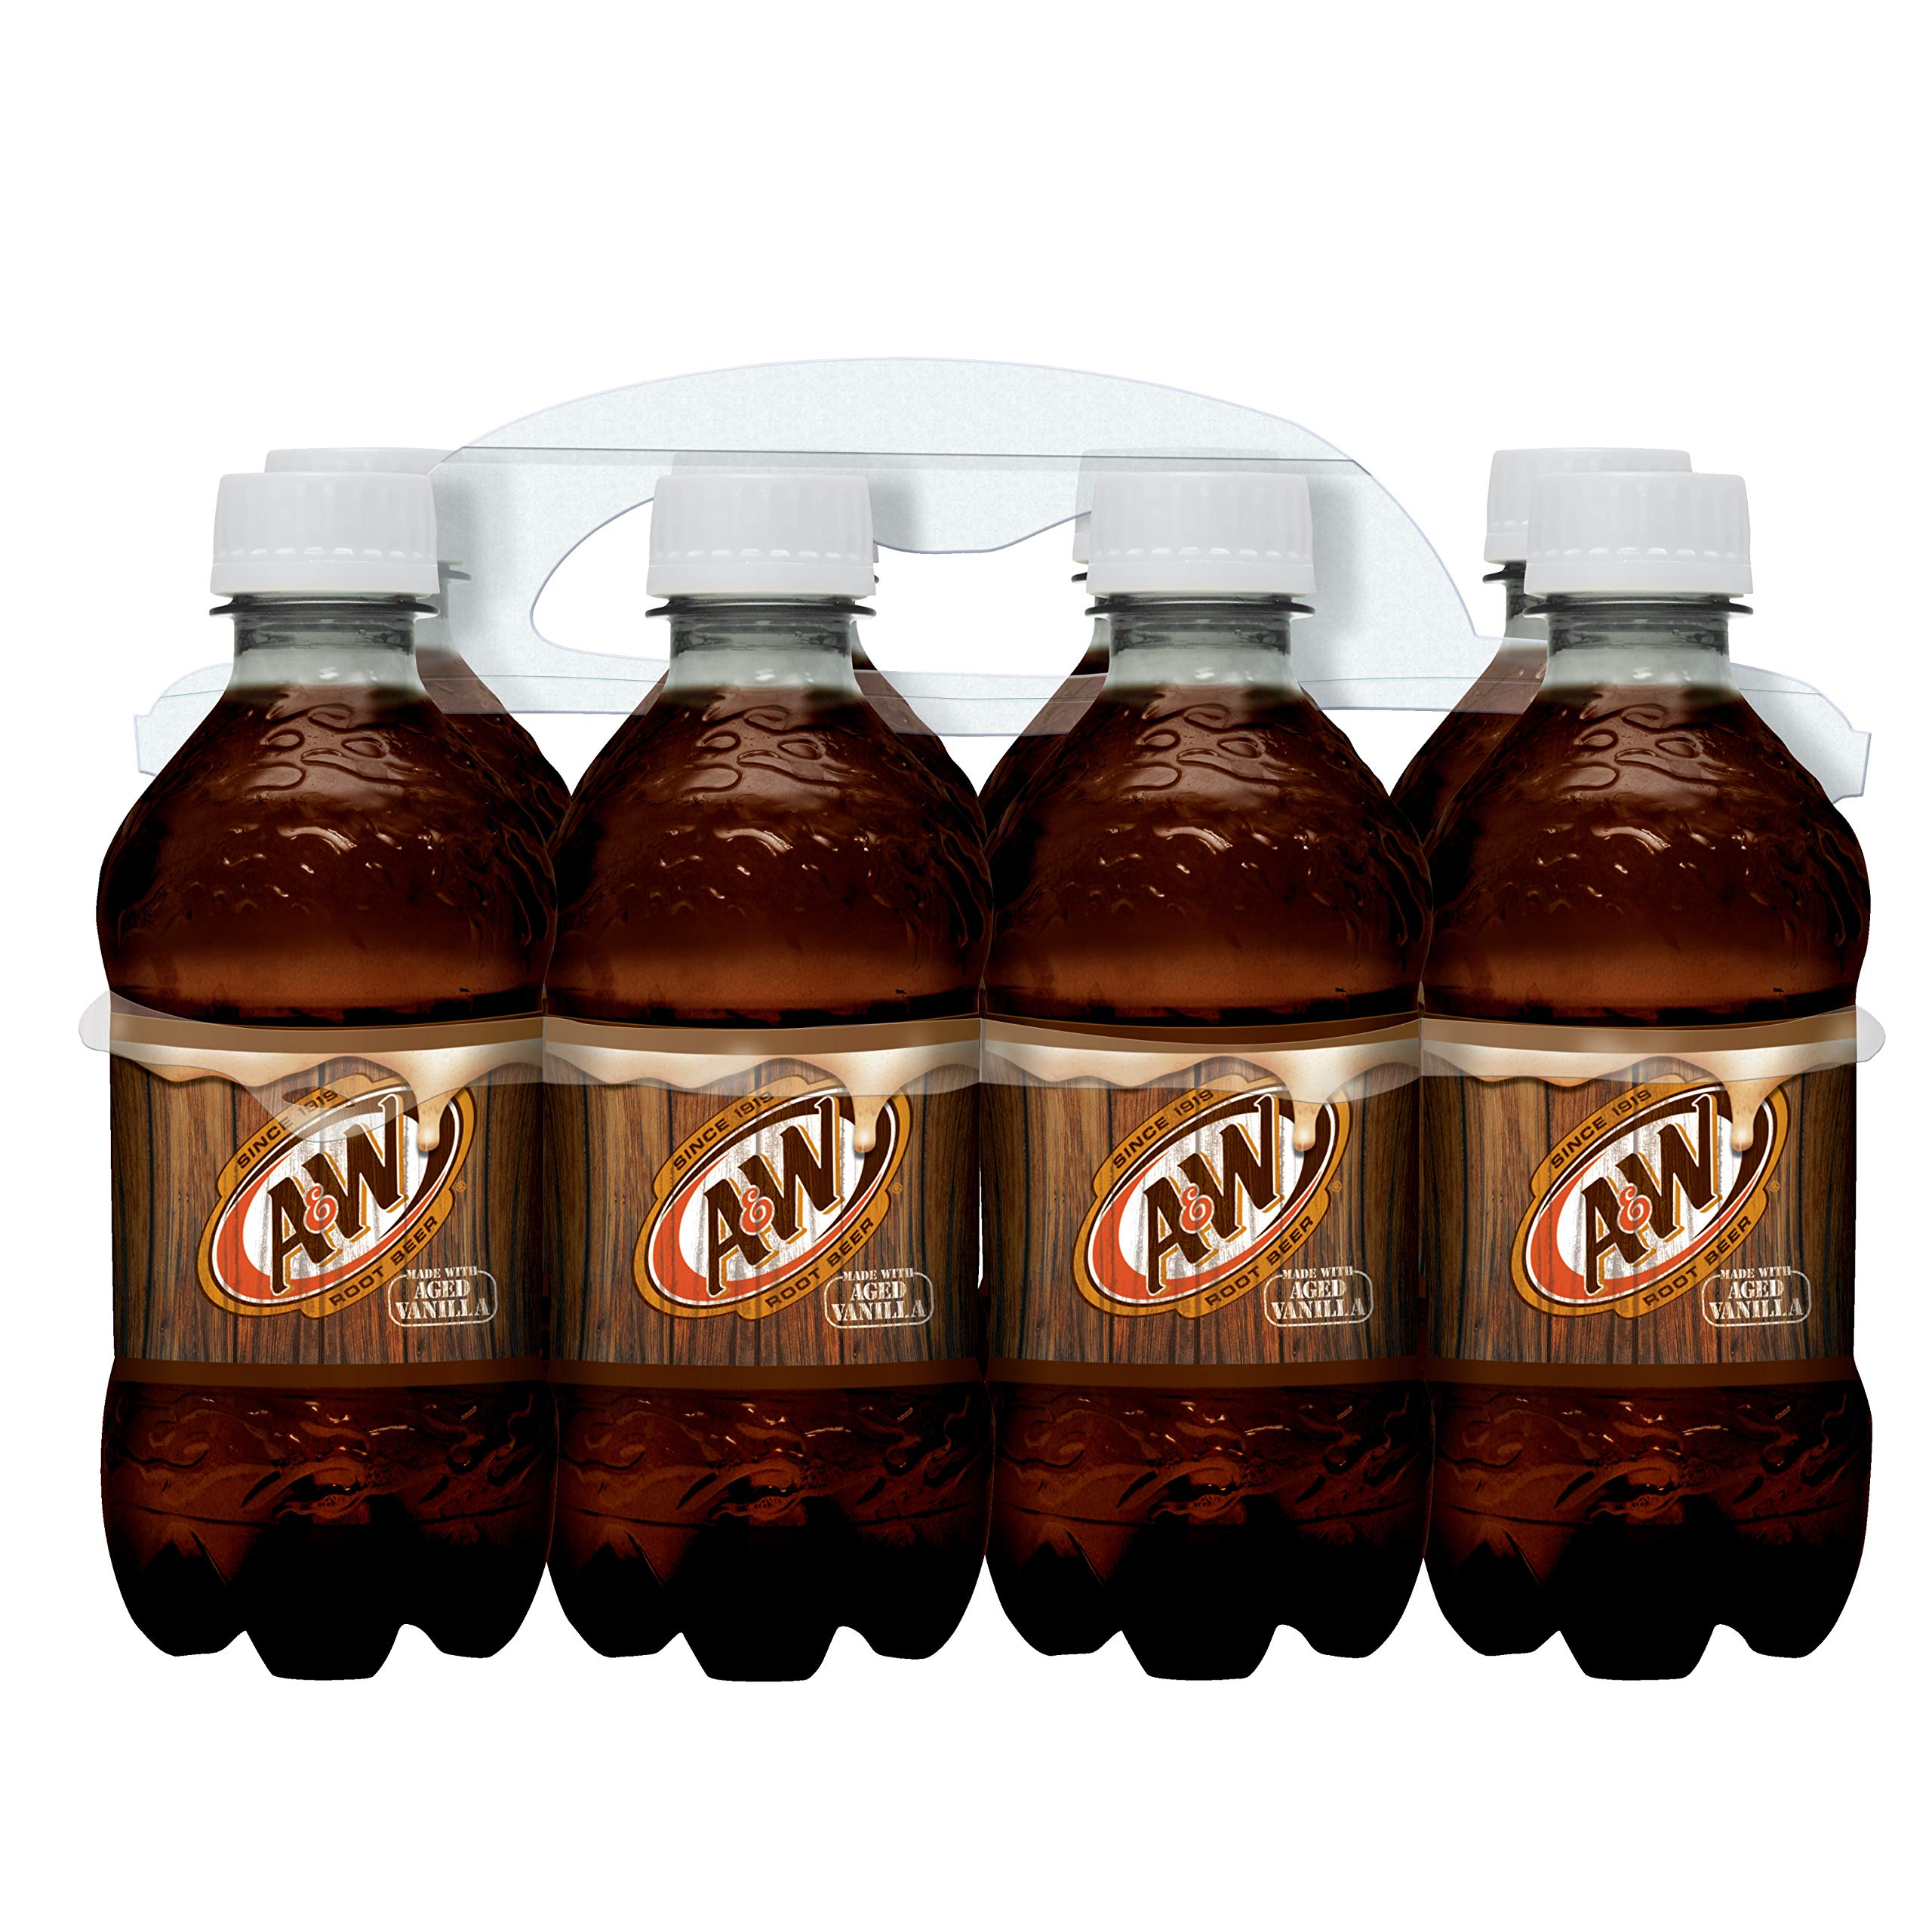 A&W Root Beer Soda, 12 Fl Oz (pack of 8)